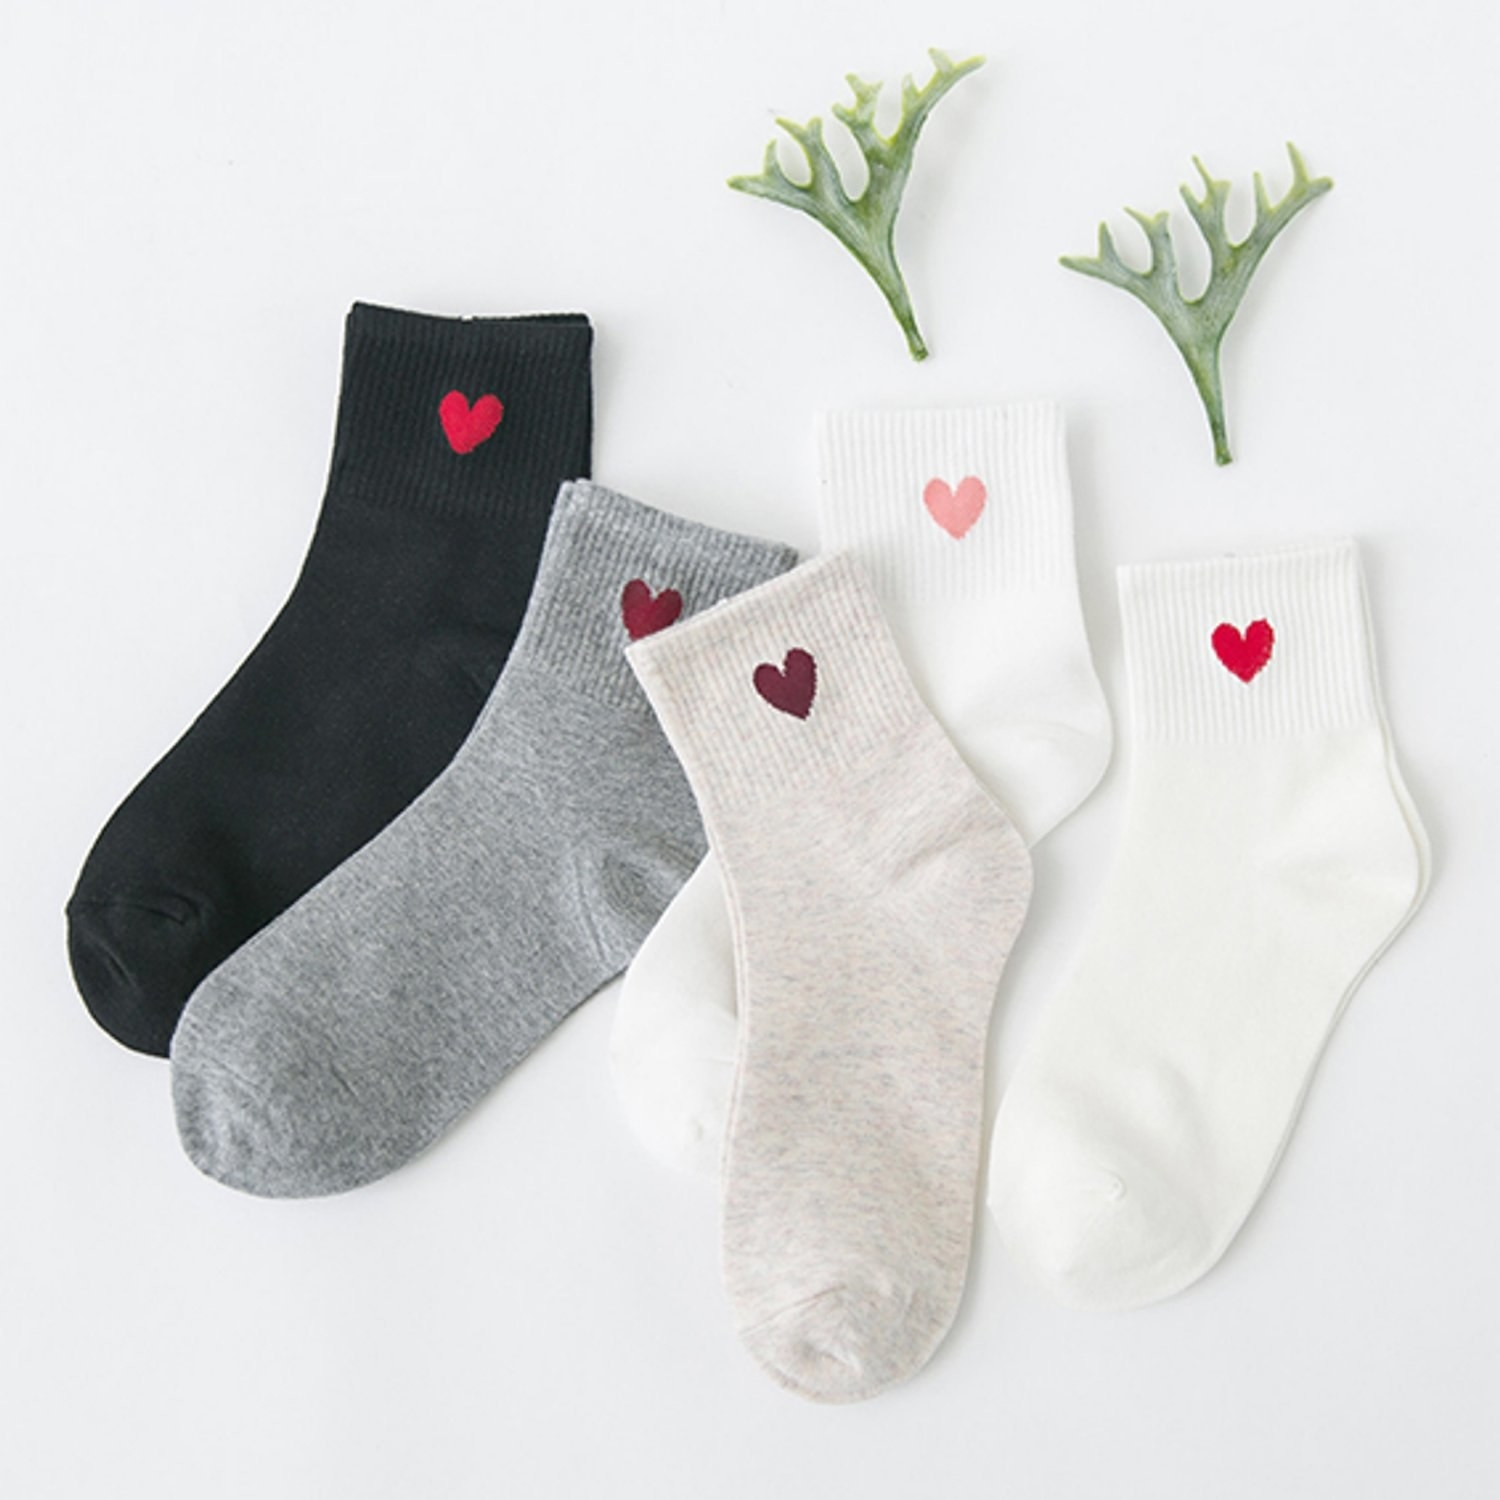 ankle socks with little hearts on ankle part